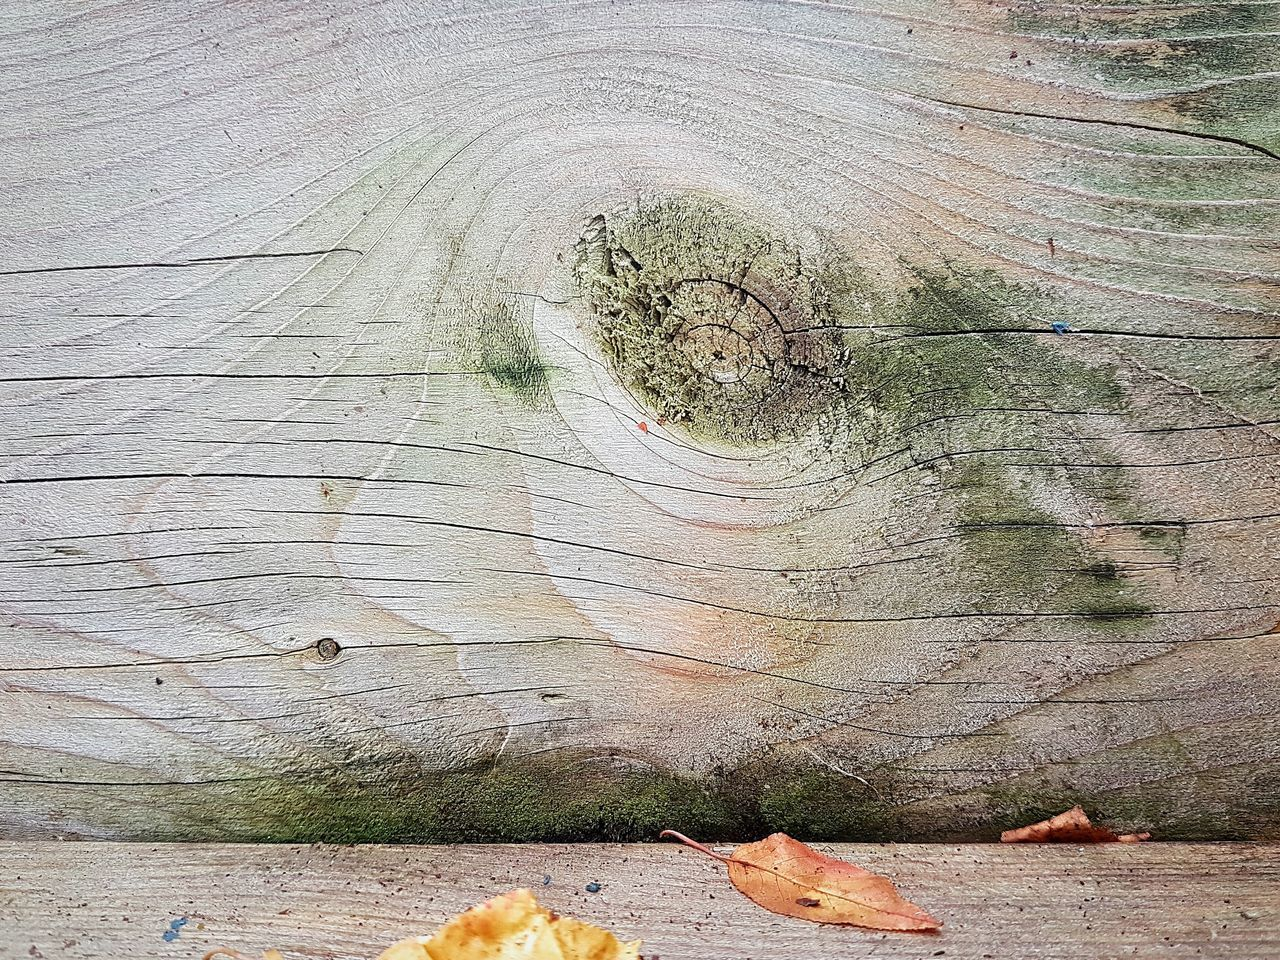 Showing its age... I See Faces (The Original) Shapes In Nature  Wood Material Wood Rings Wood Surface Textured  Texture In Nature Nature Is Art Shapes And Patterns  Pattern Patterns In Nature Textures And Surfaces Looking At Things Differently Maximum Closeness After The Rain | Full Frame Backgrounds No People Close-up Outdoors Day